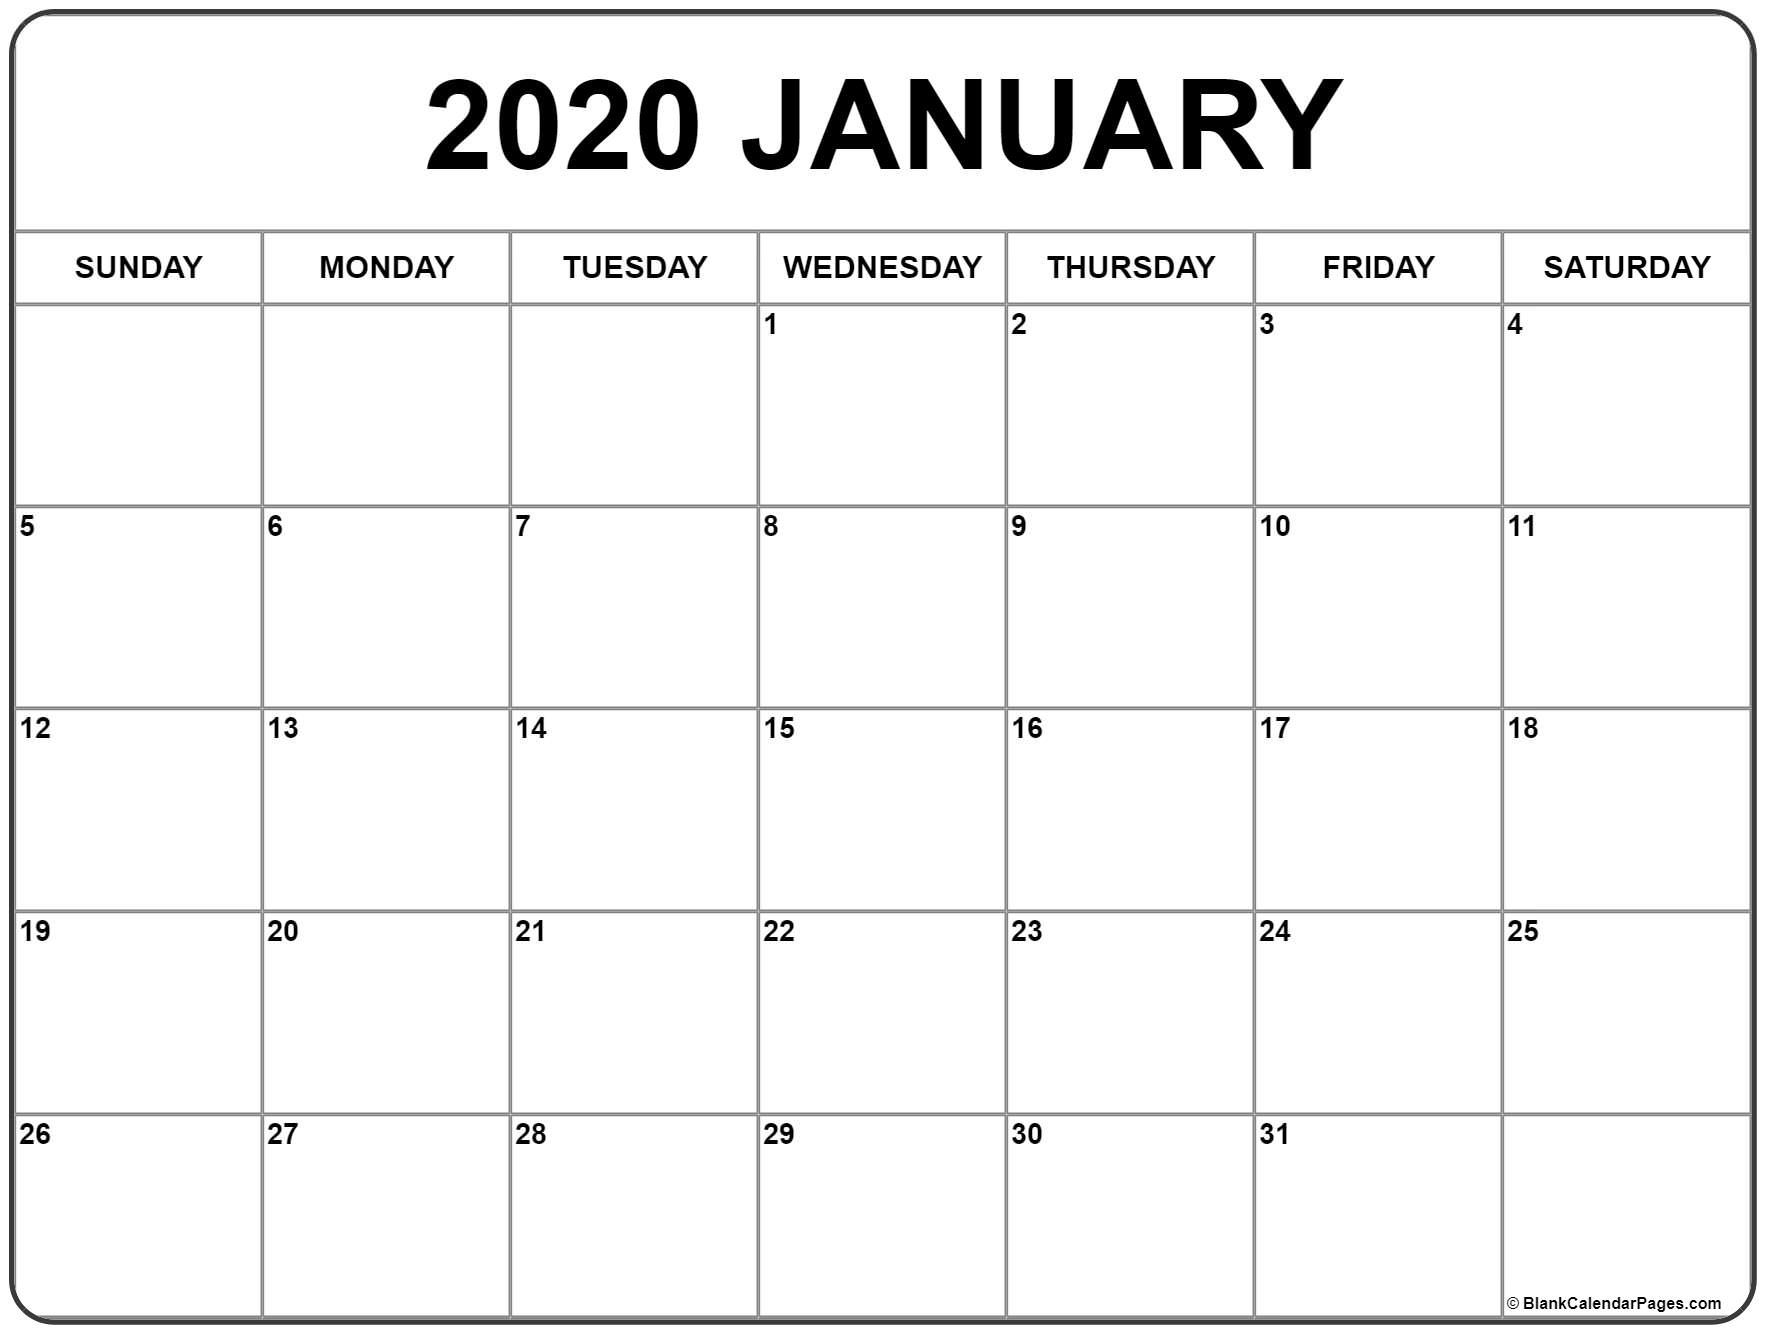 January 2020 Calendar | Free Printable Monthly Calendars with regard to Free Calendar Templates 2020 Printable